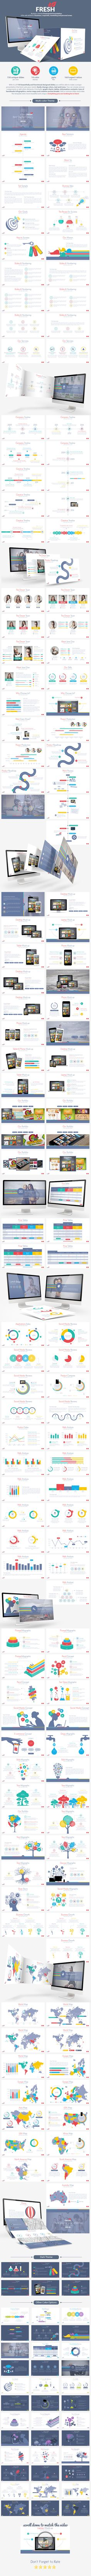 Fresh Powerpoint Presentation (PowerPoint Templates) preview